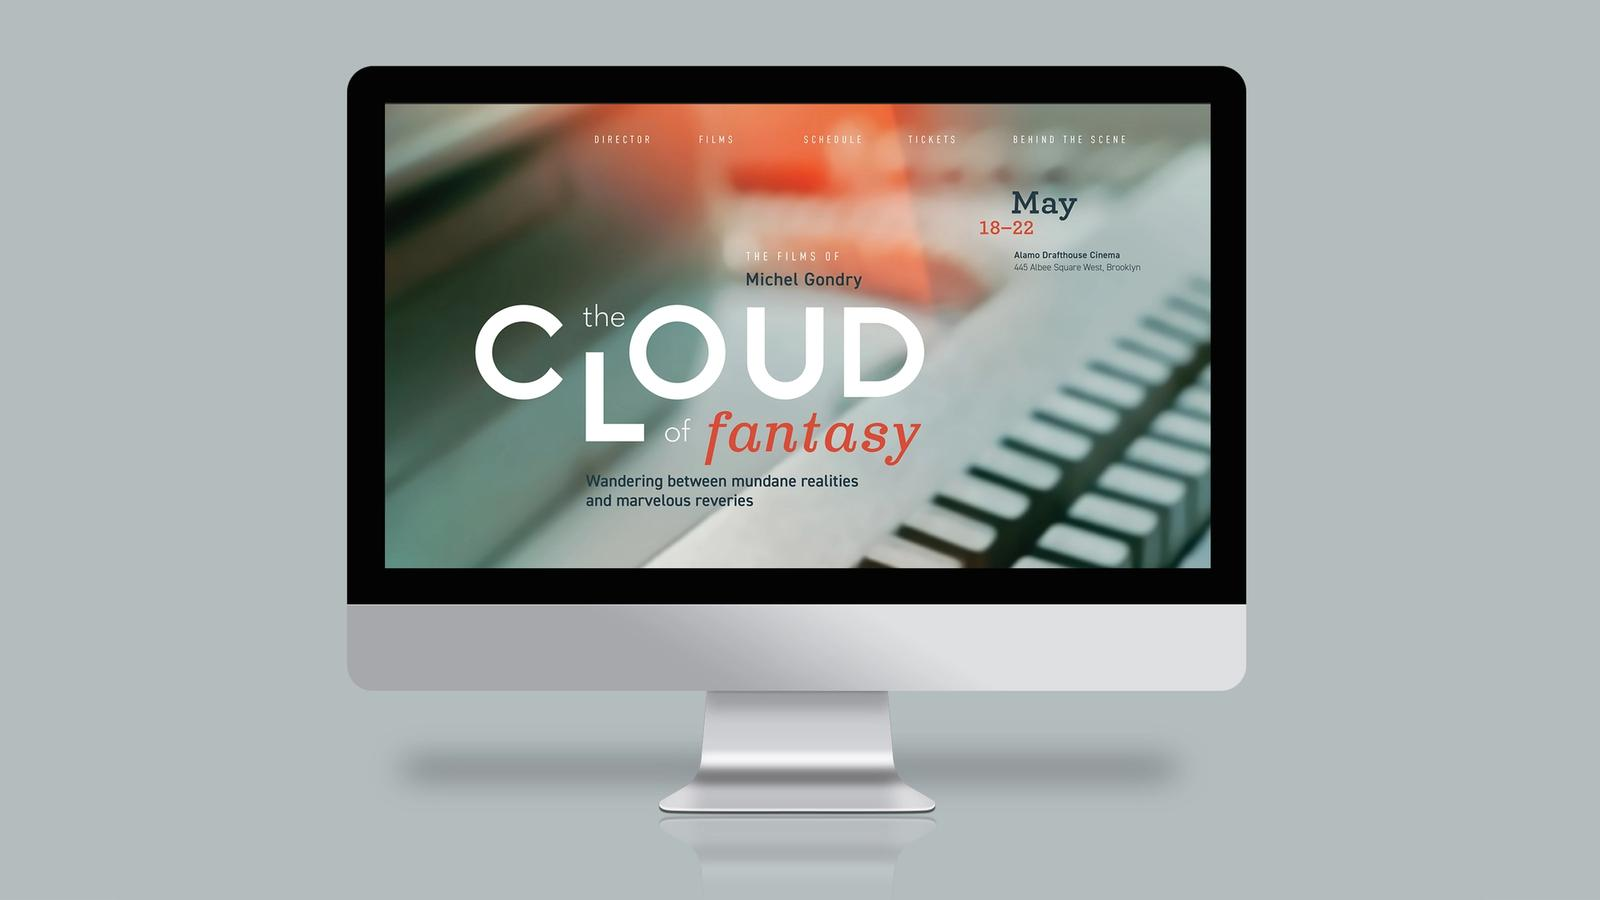 Michel Gondry Film Festival // The Could of Fantasy